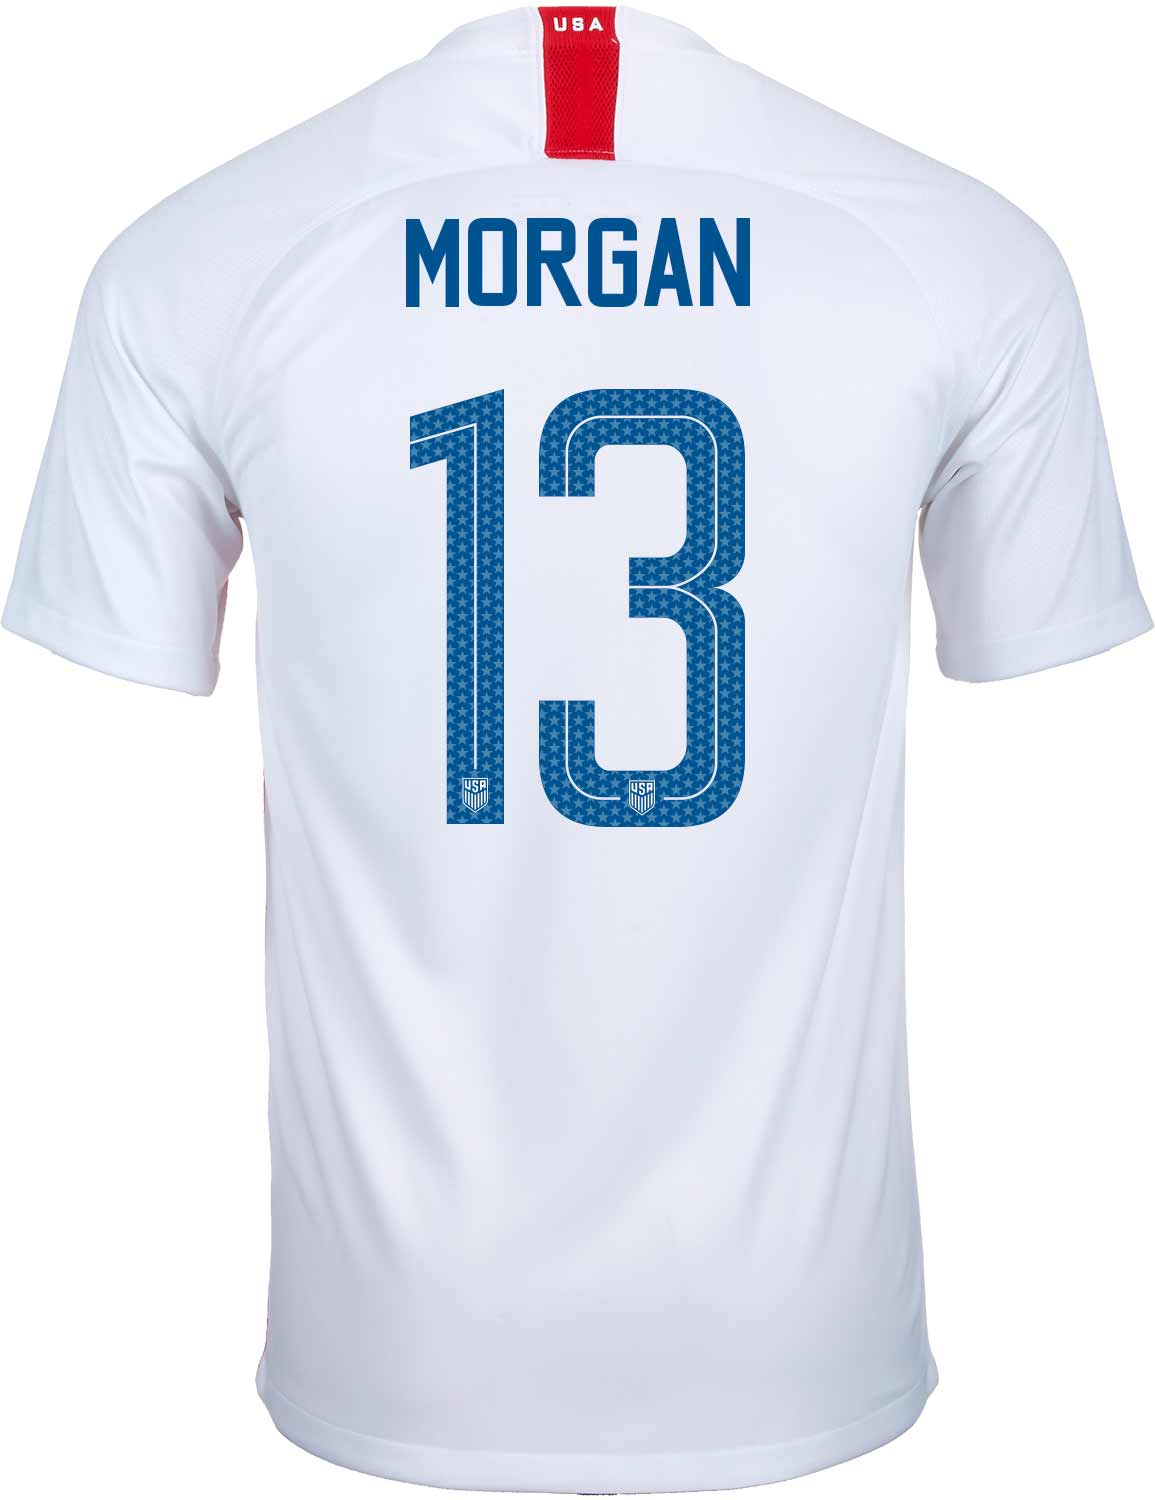 new arrival 91799 6e7e7 2018/19 Kids Nike Alex Morgan USA Home Jersey - SoccerPro